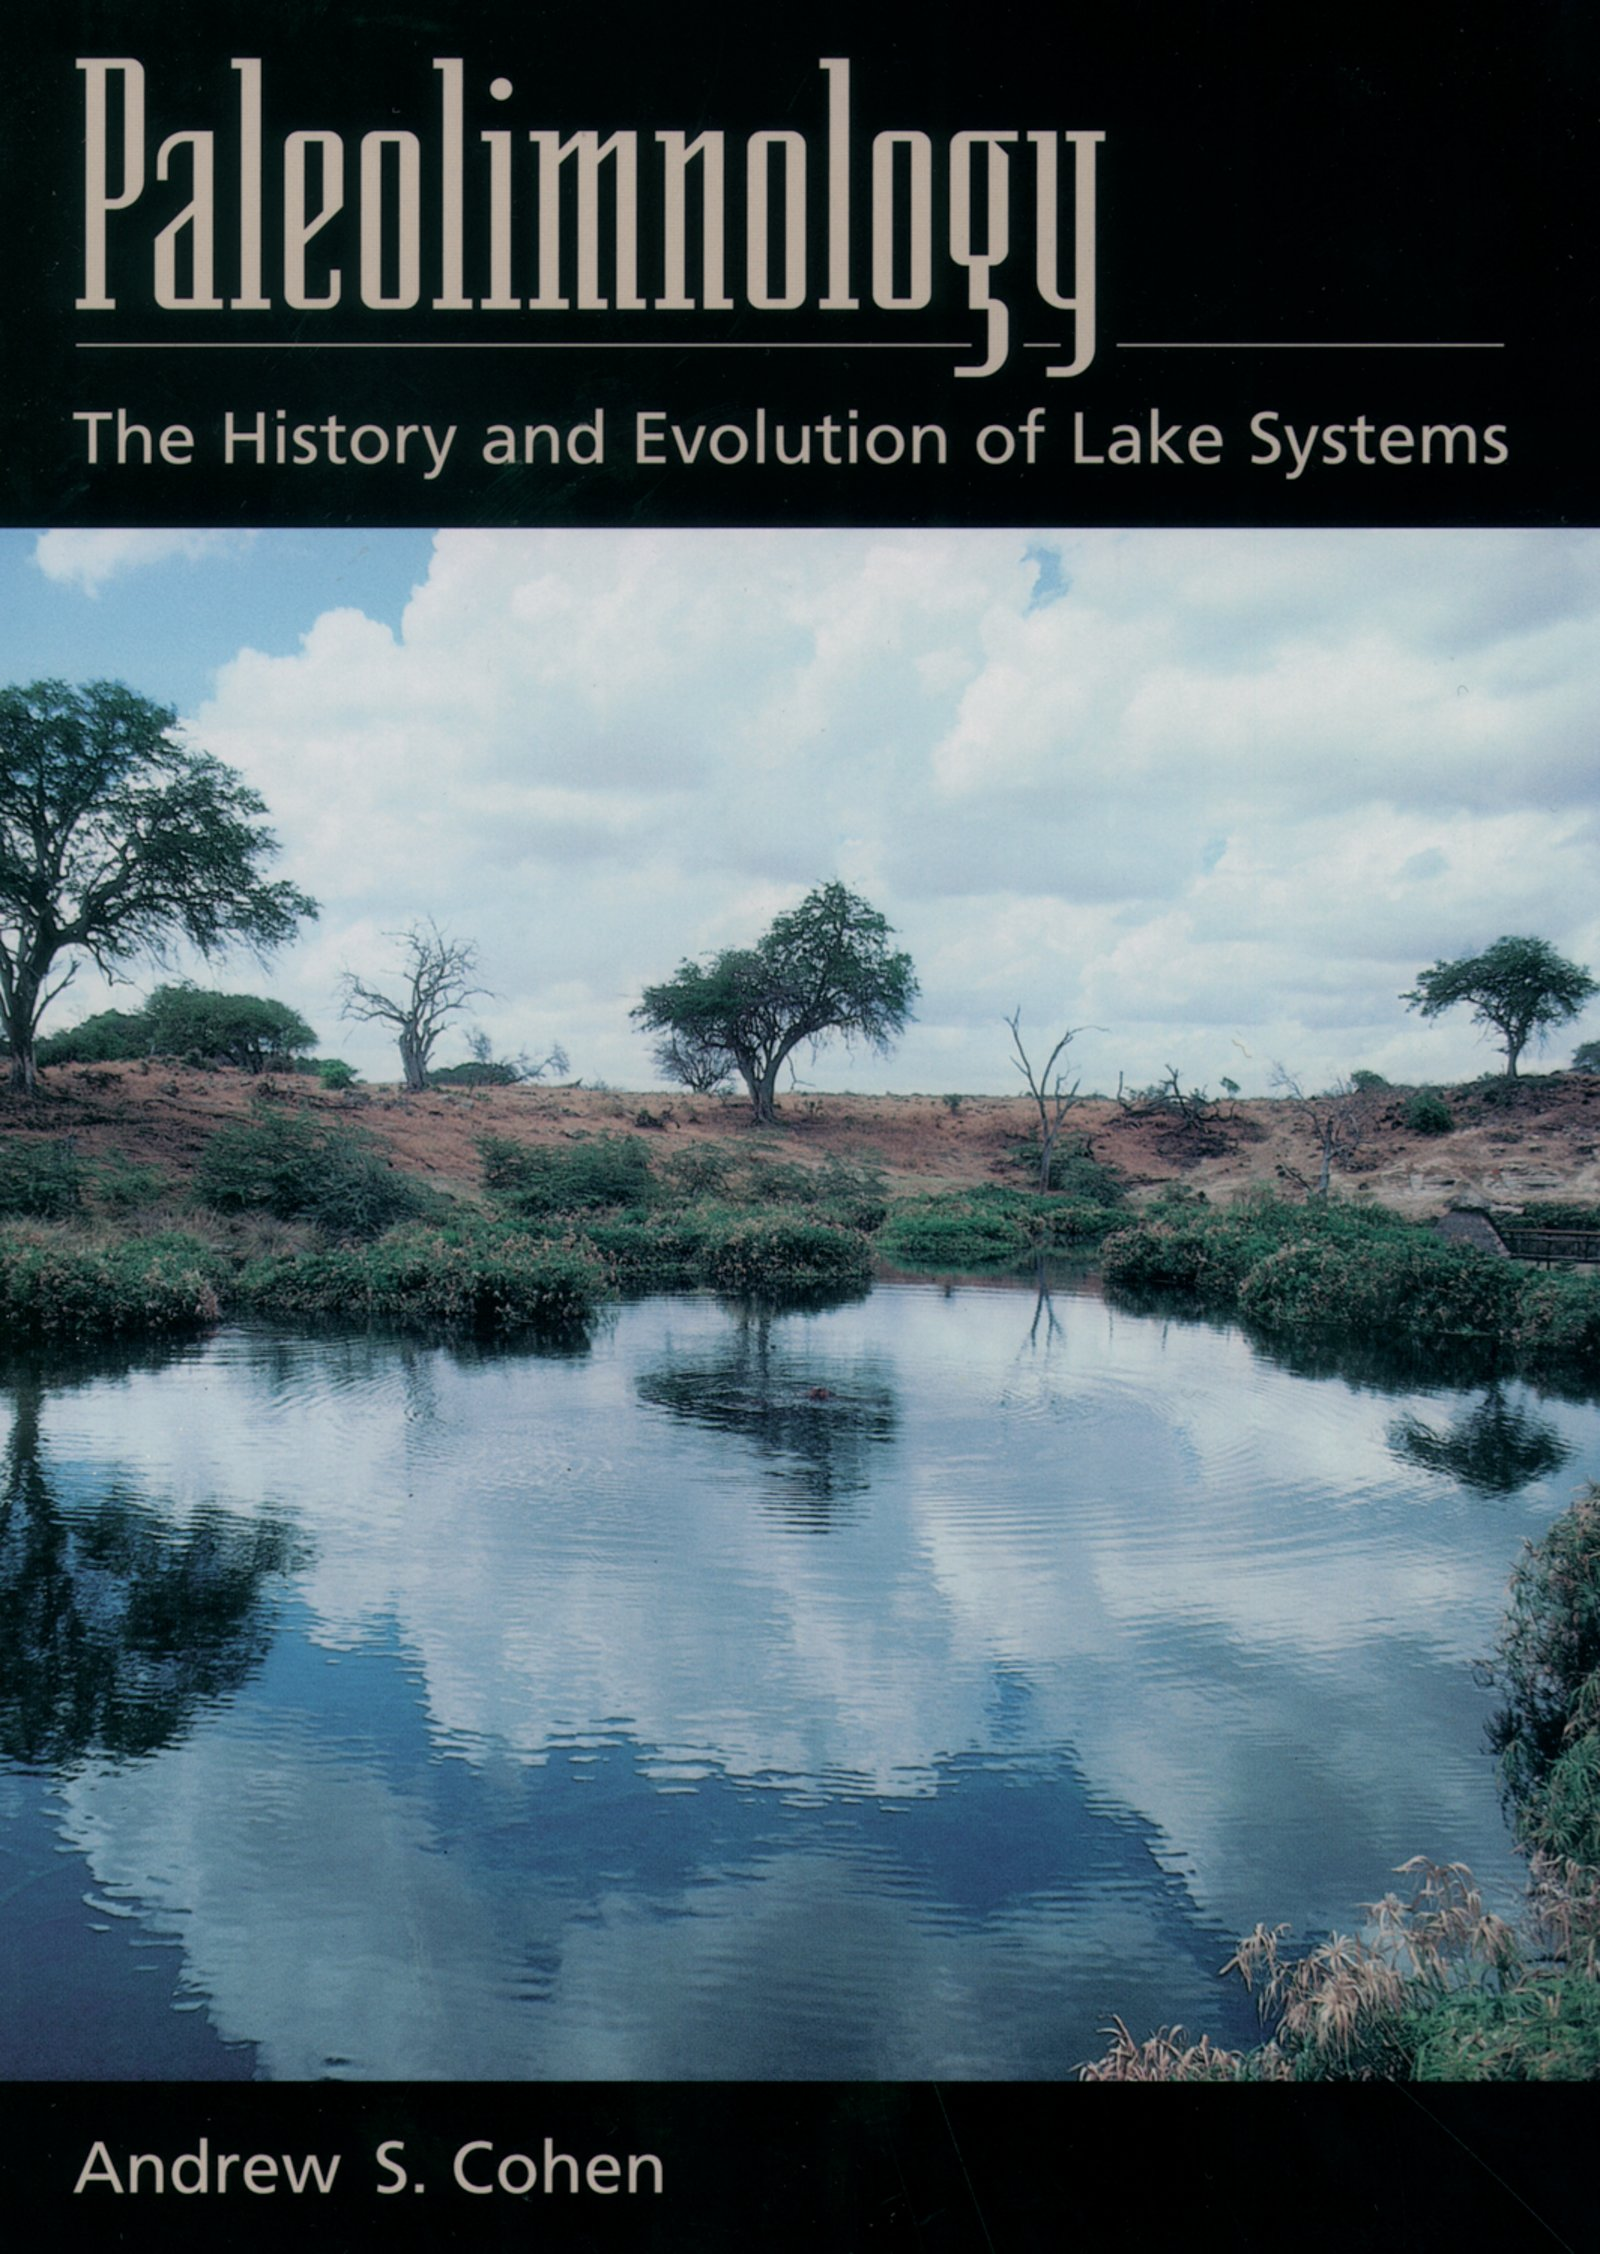 PaleolimnologyThe History and Evolution of Lake Systems